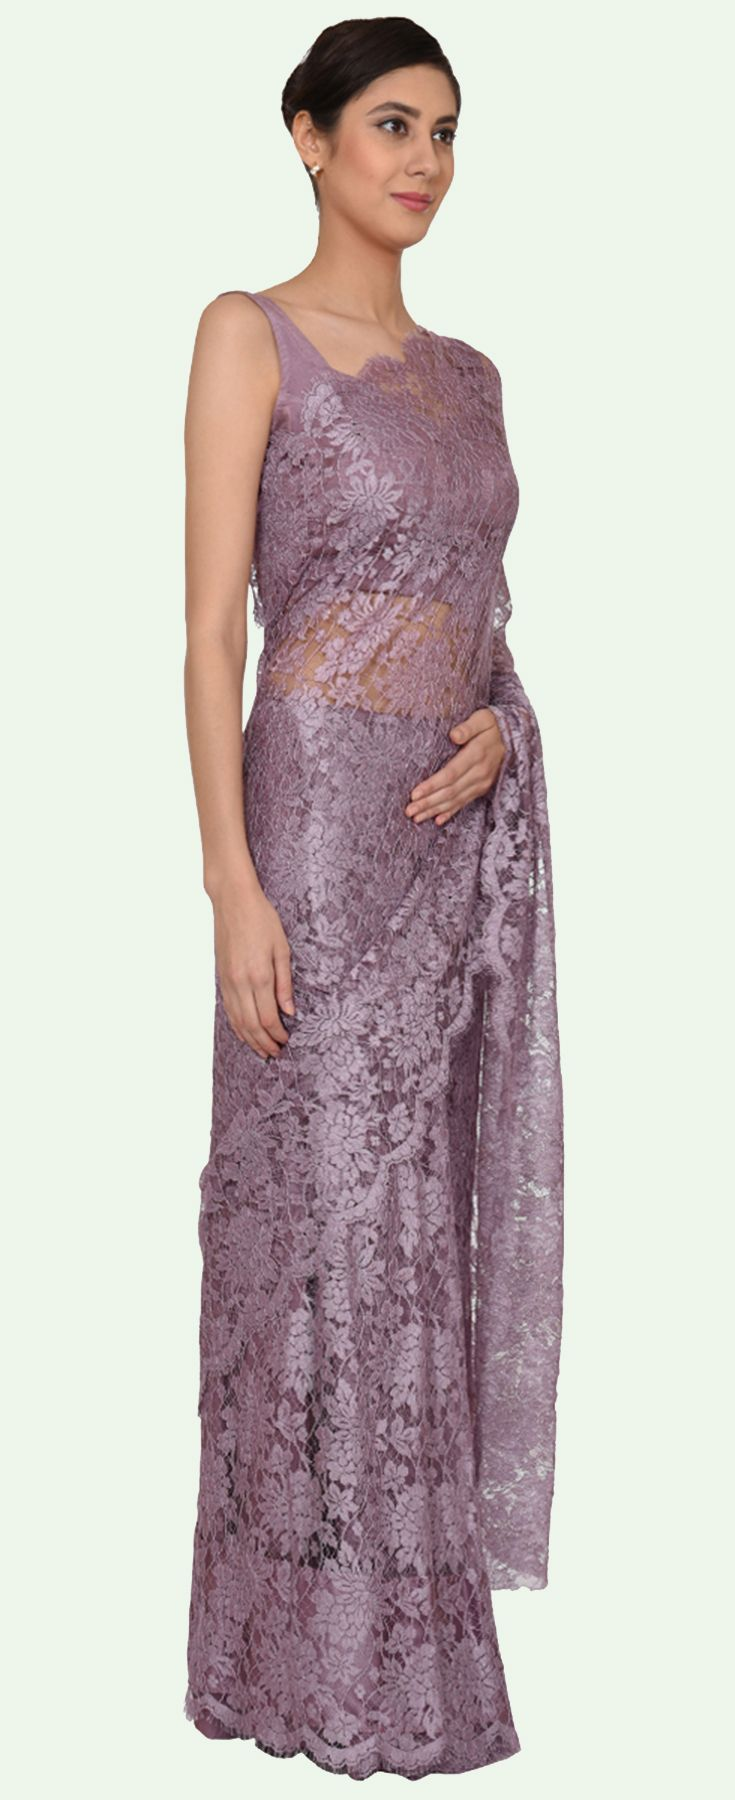 Lilac Mauve French Chantilly Lace Saree With Satin Crepe Blouse